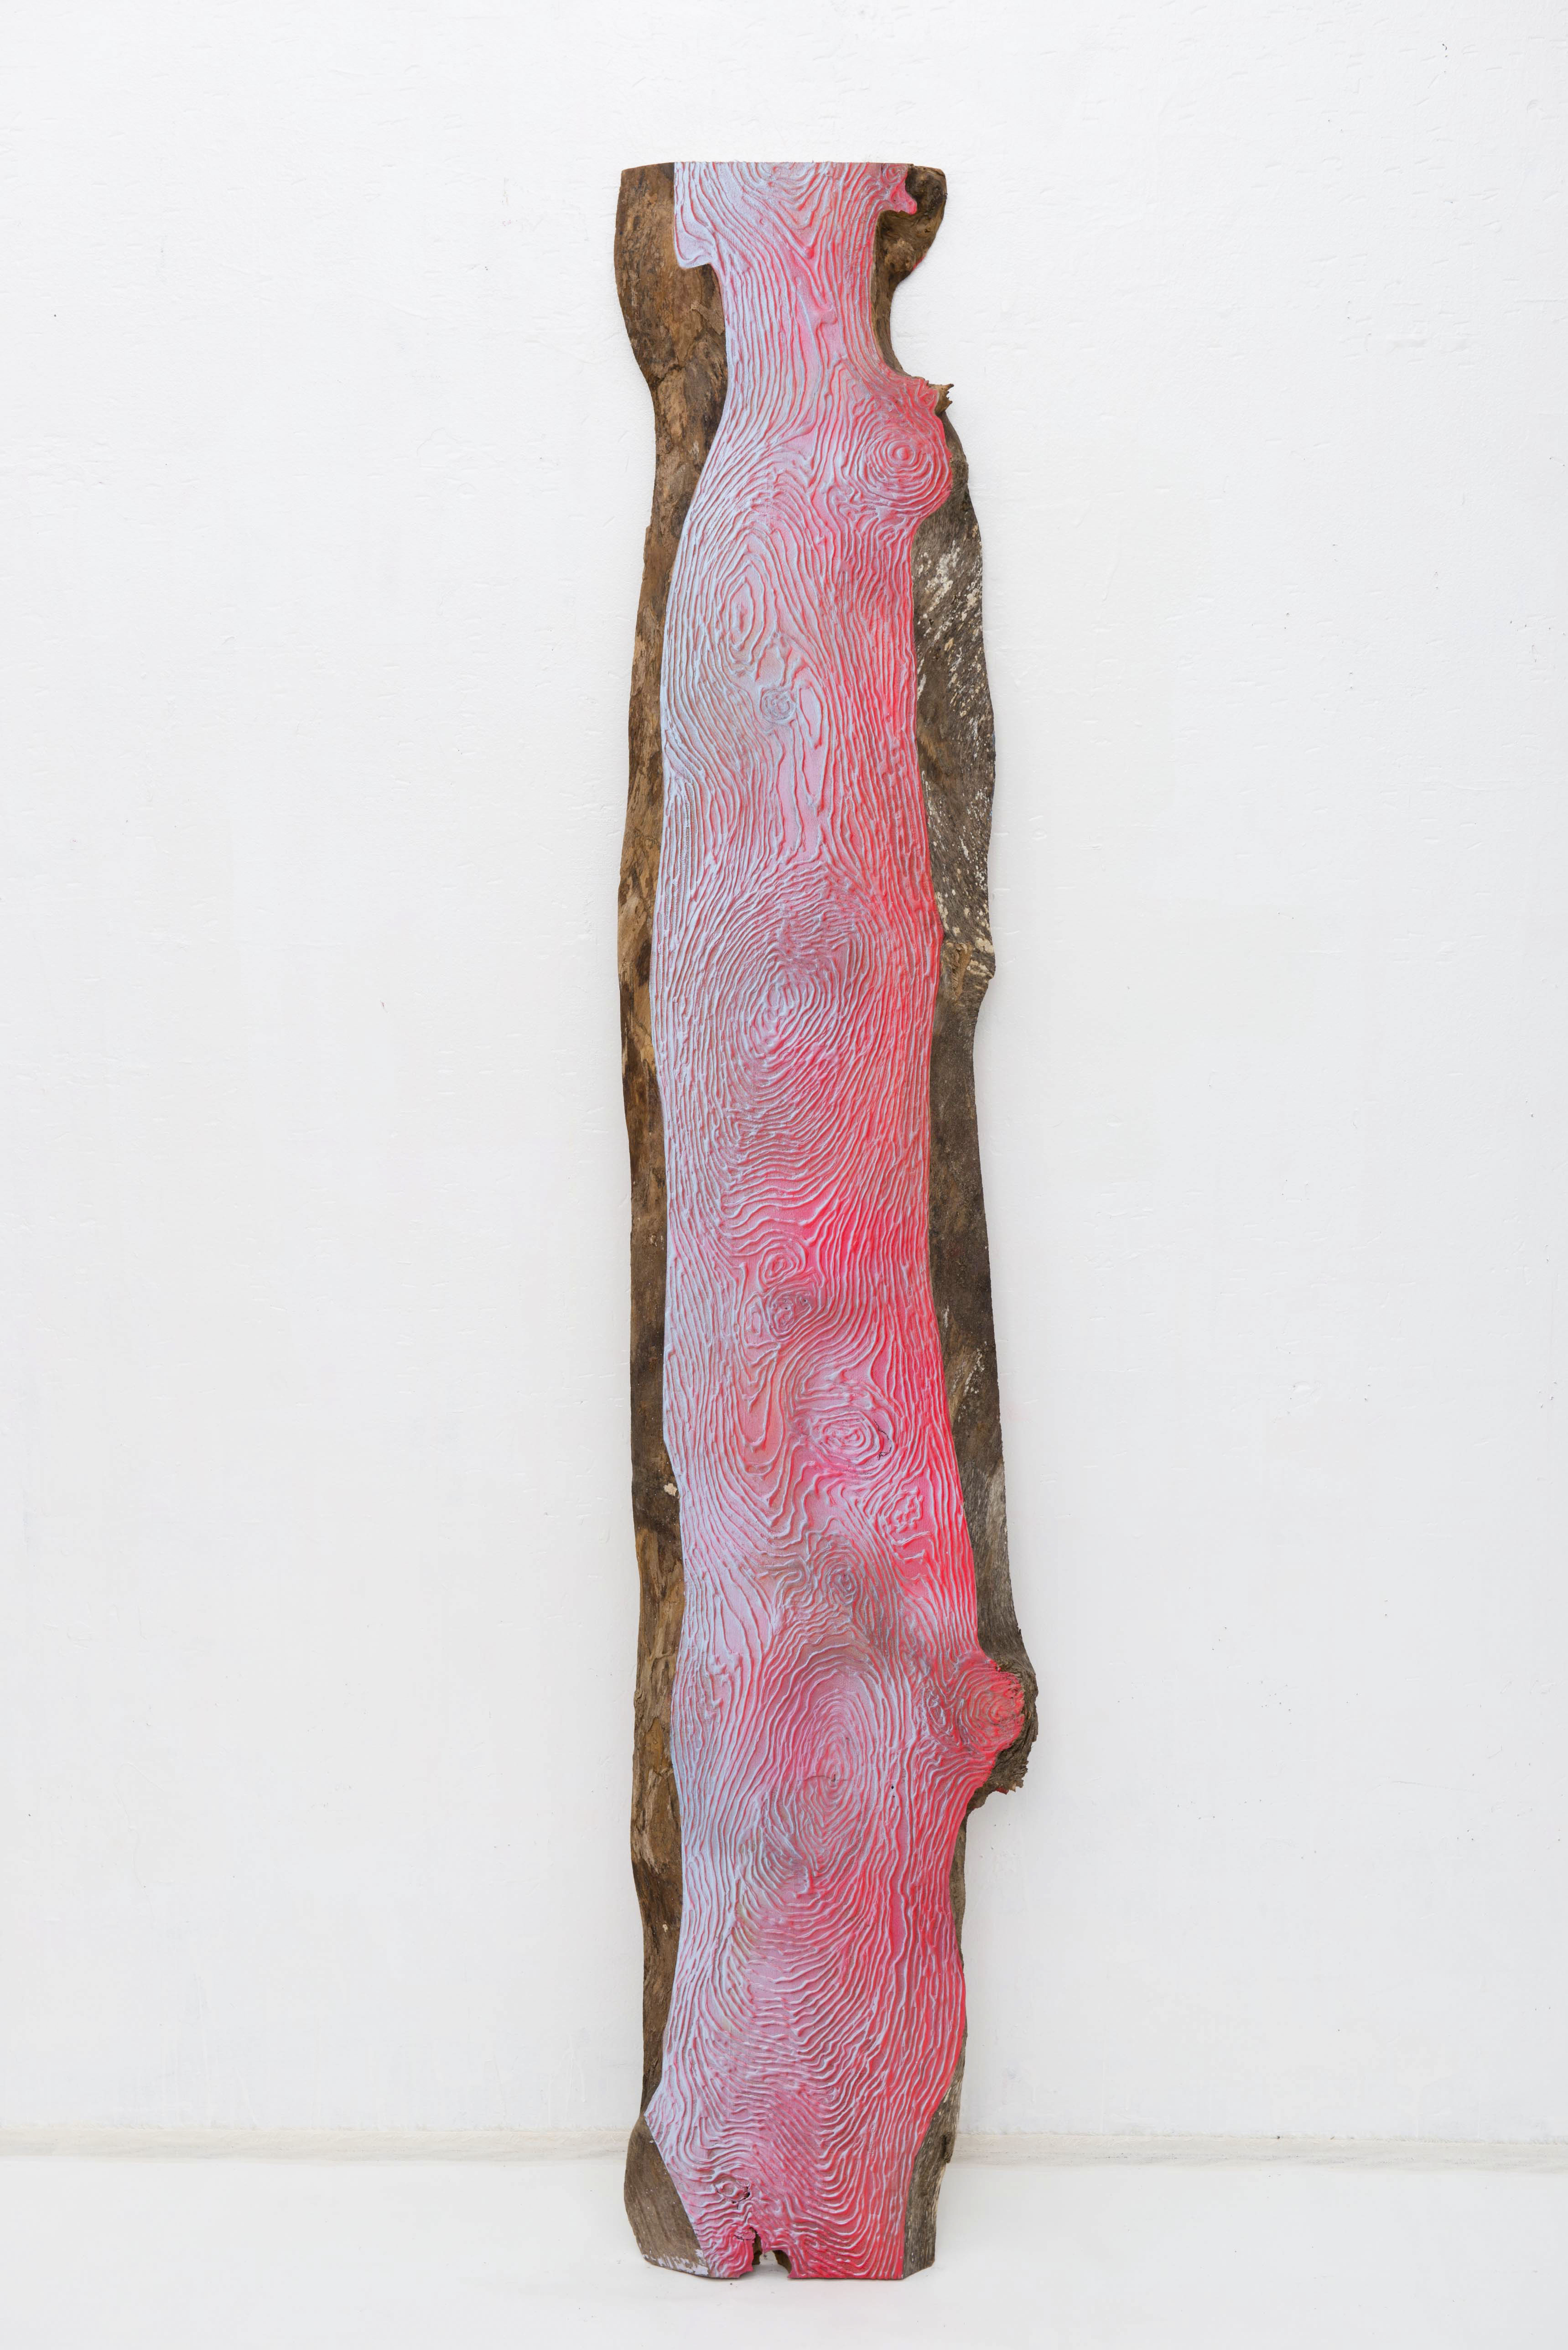 Wood Grain_Pink and blue